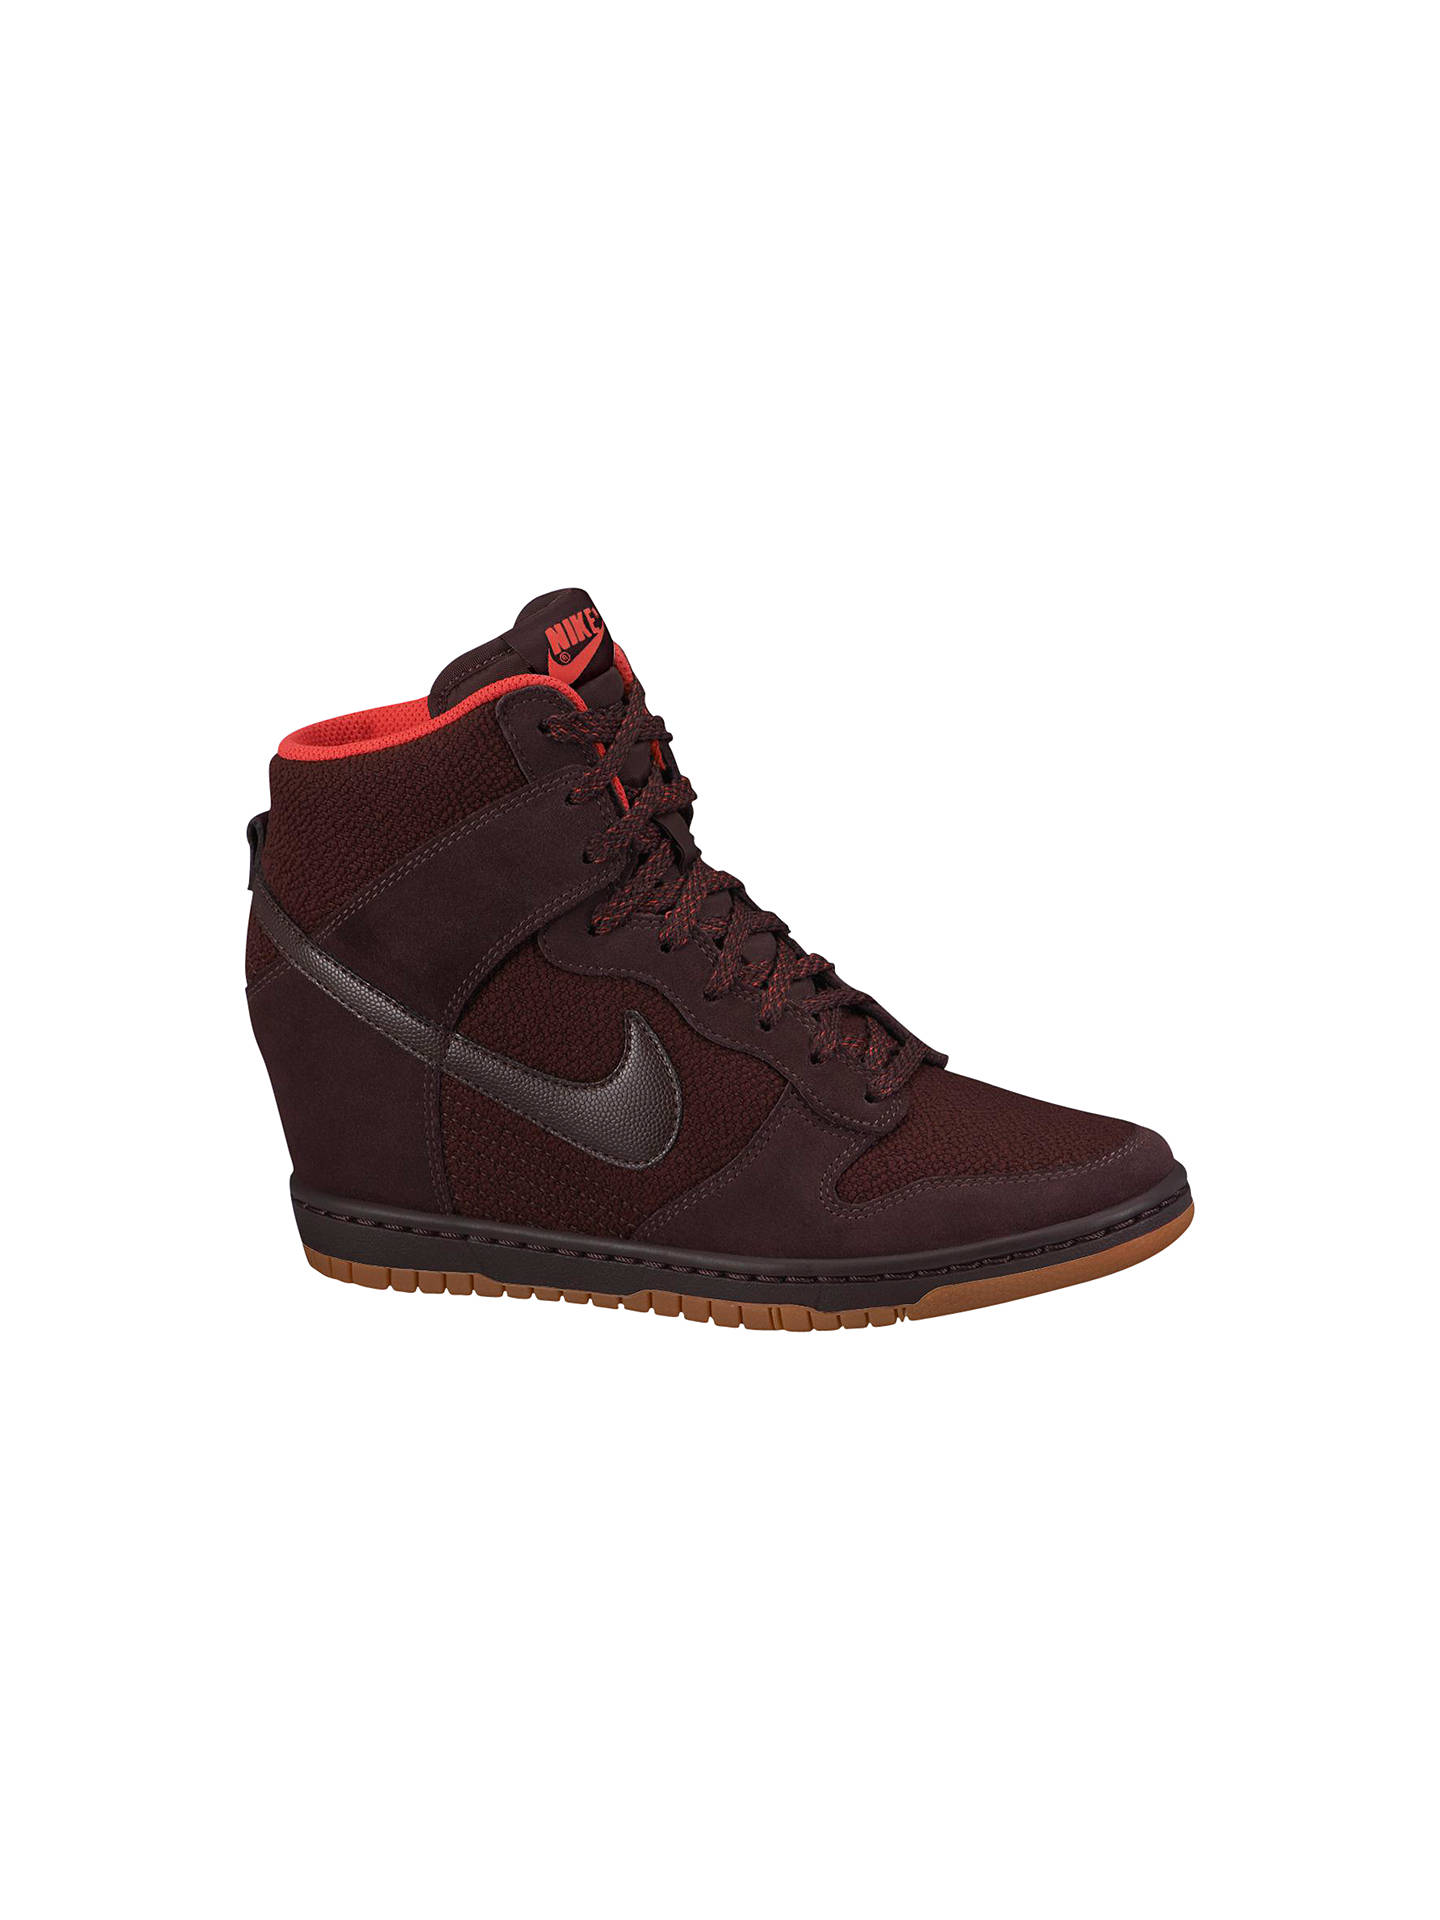 8036f9b06a72 ... where to buy buynike dunk sky hi mesh womens shoes deep burgundy 3  online at johnlewis